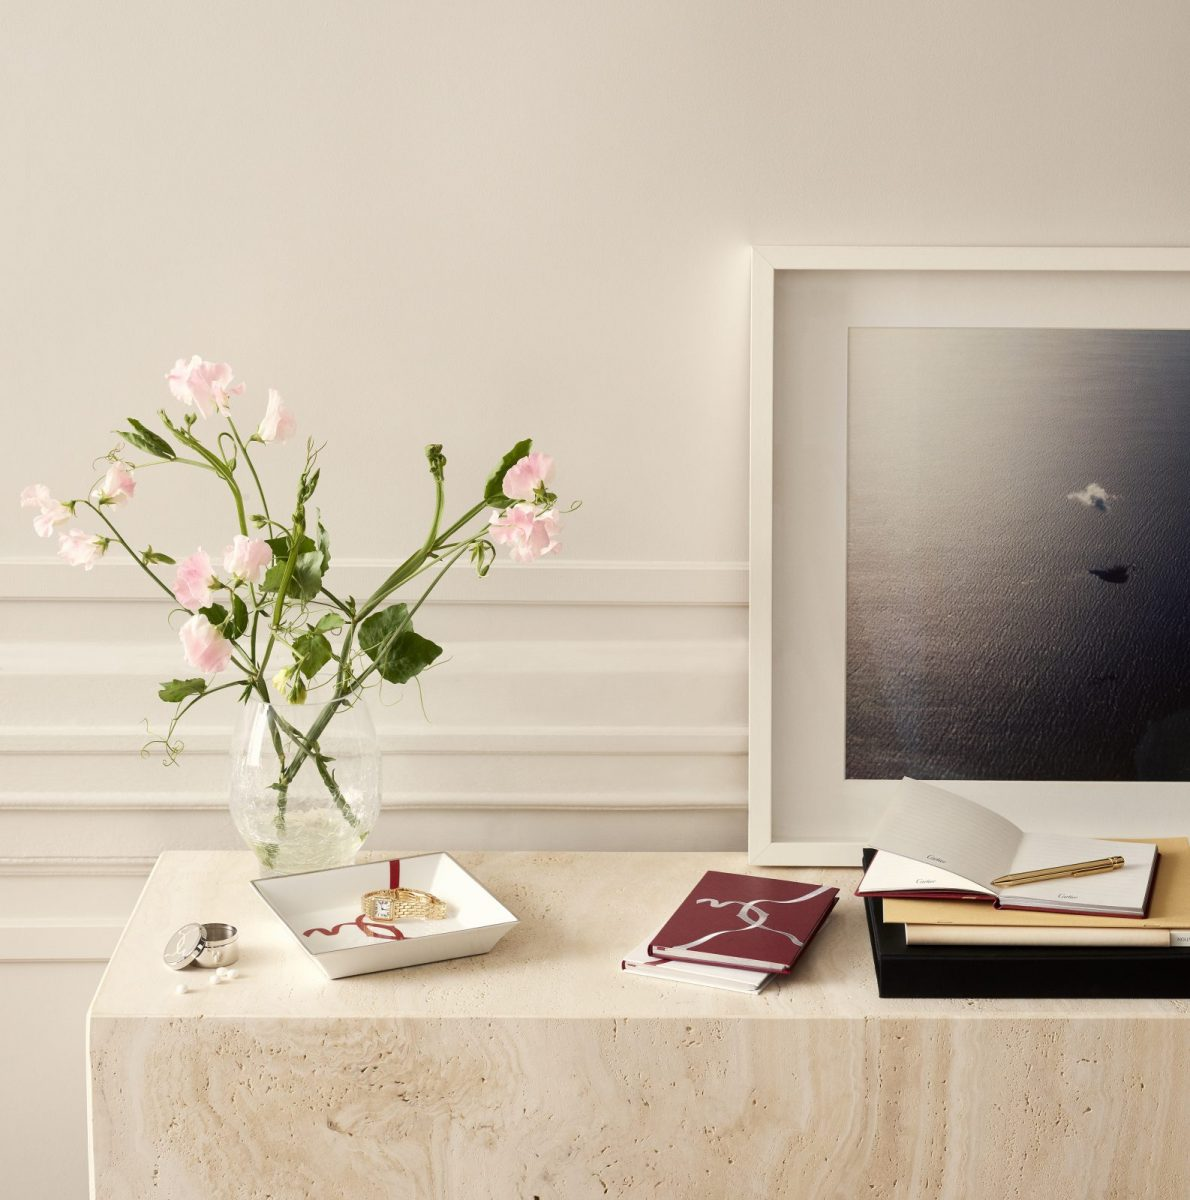 Just in time for Christmas, four new collections of covetable Cartier objets 1